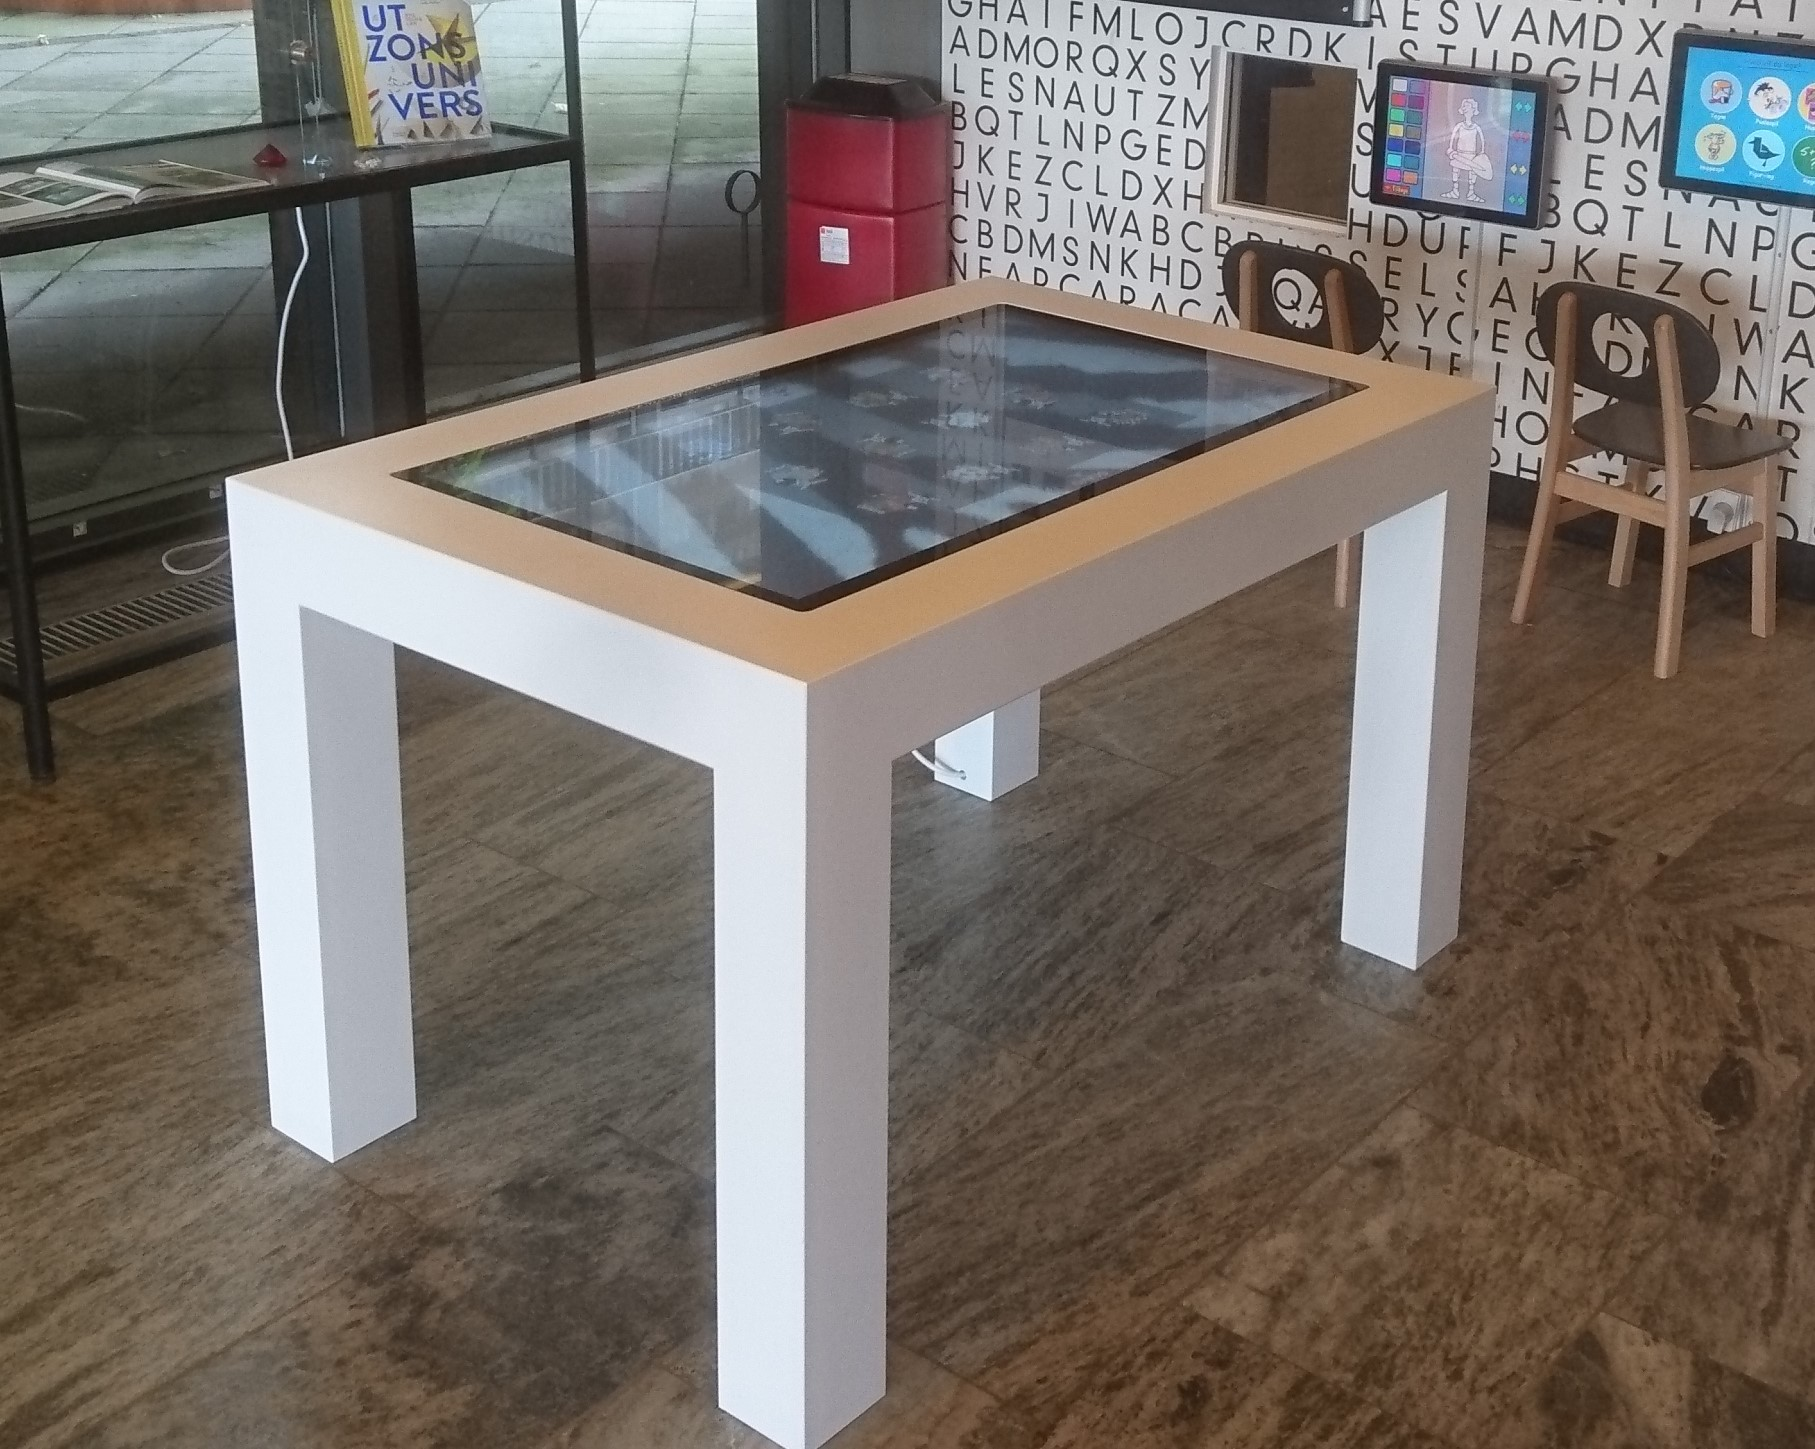 Educate play table